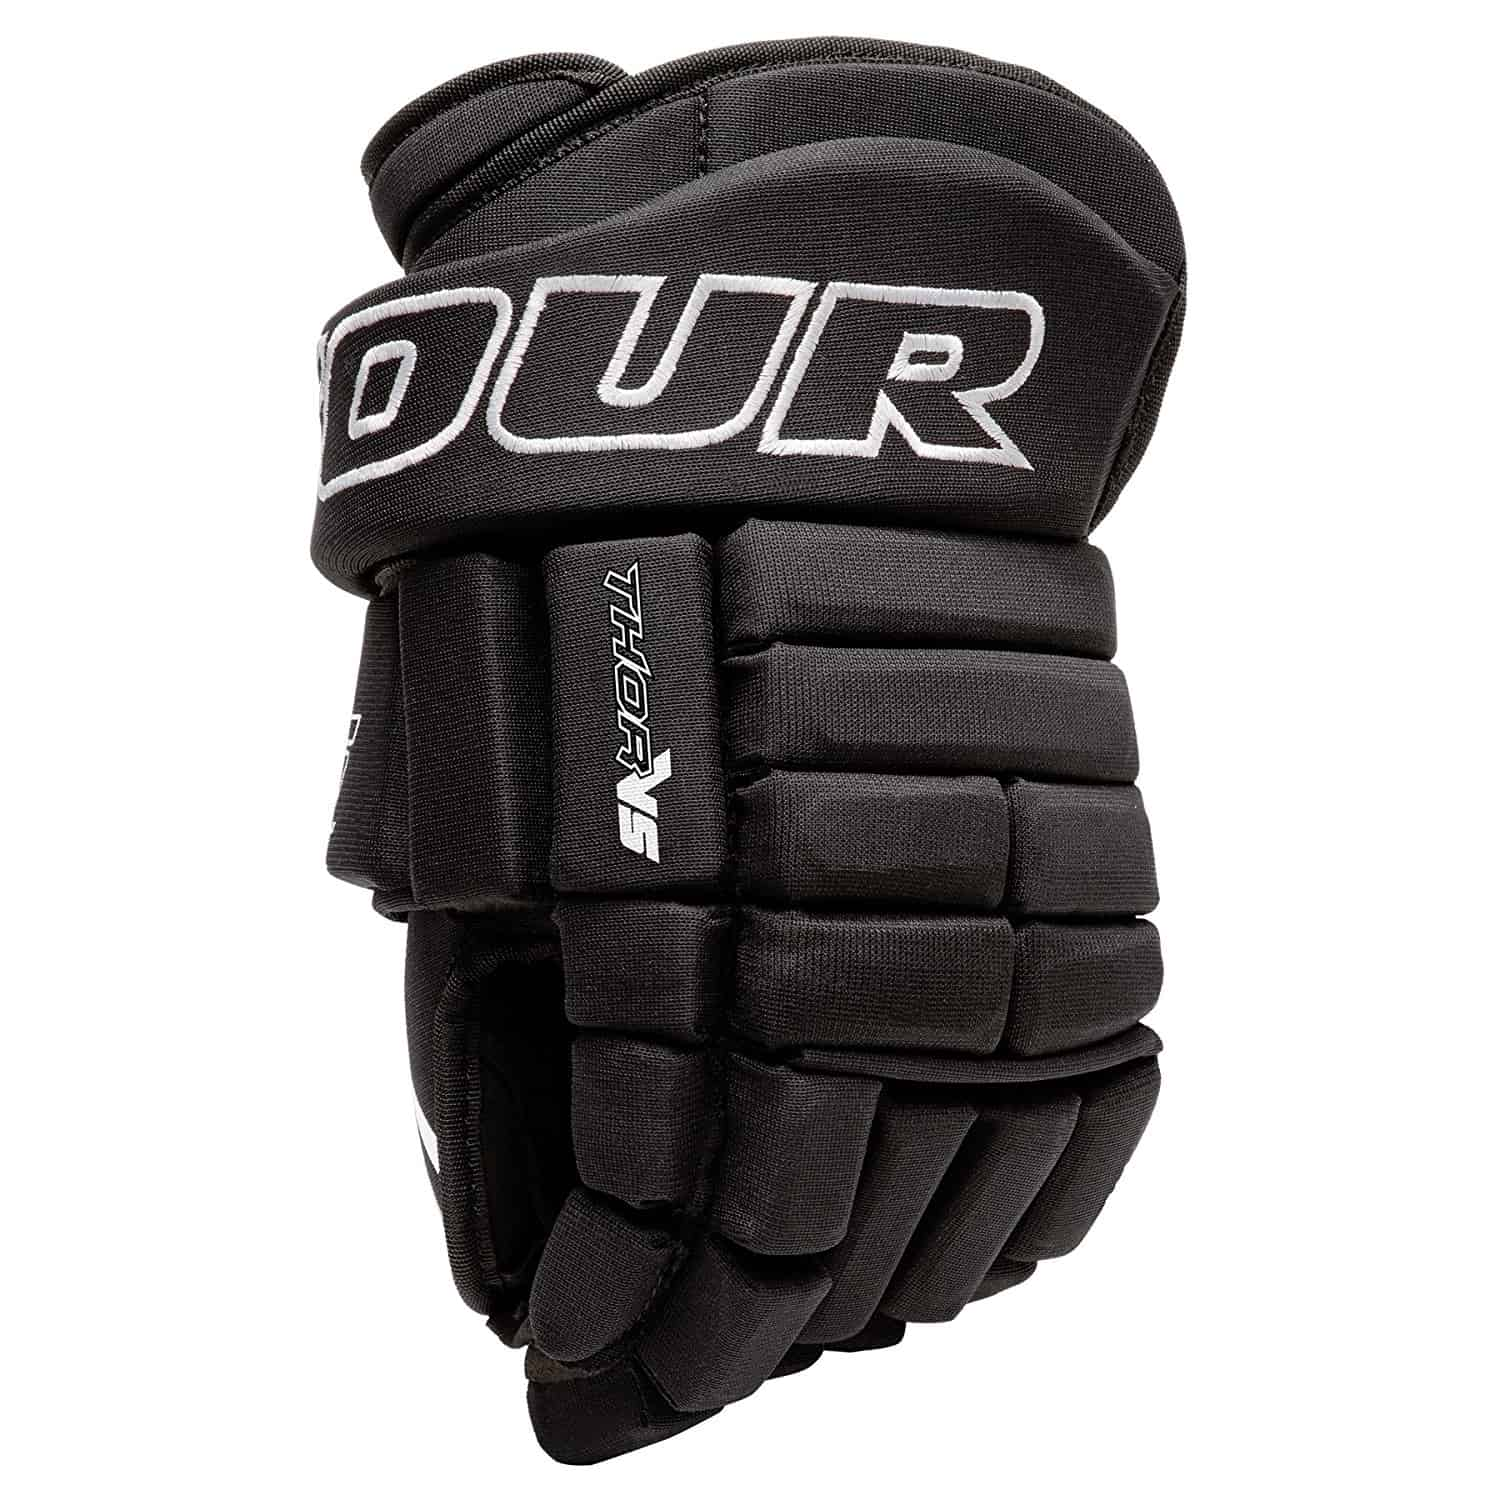 Tour Thor V5 Roller Hockey Gloves